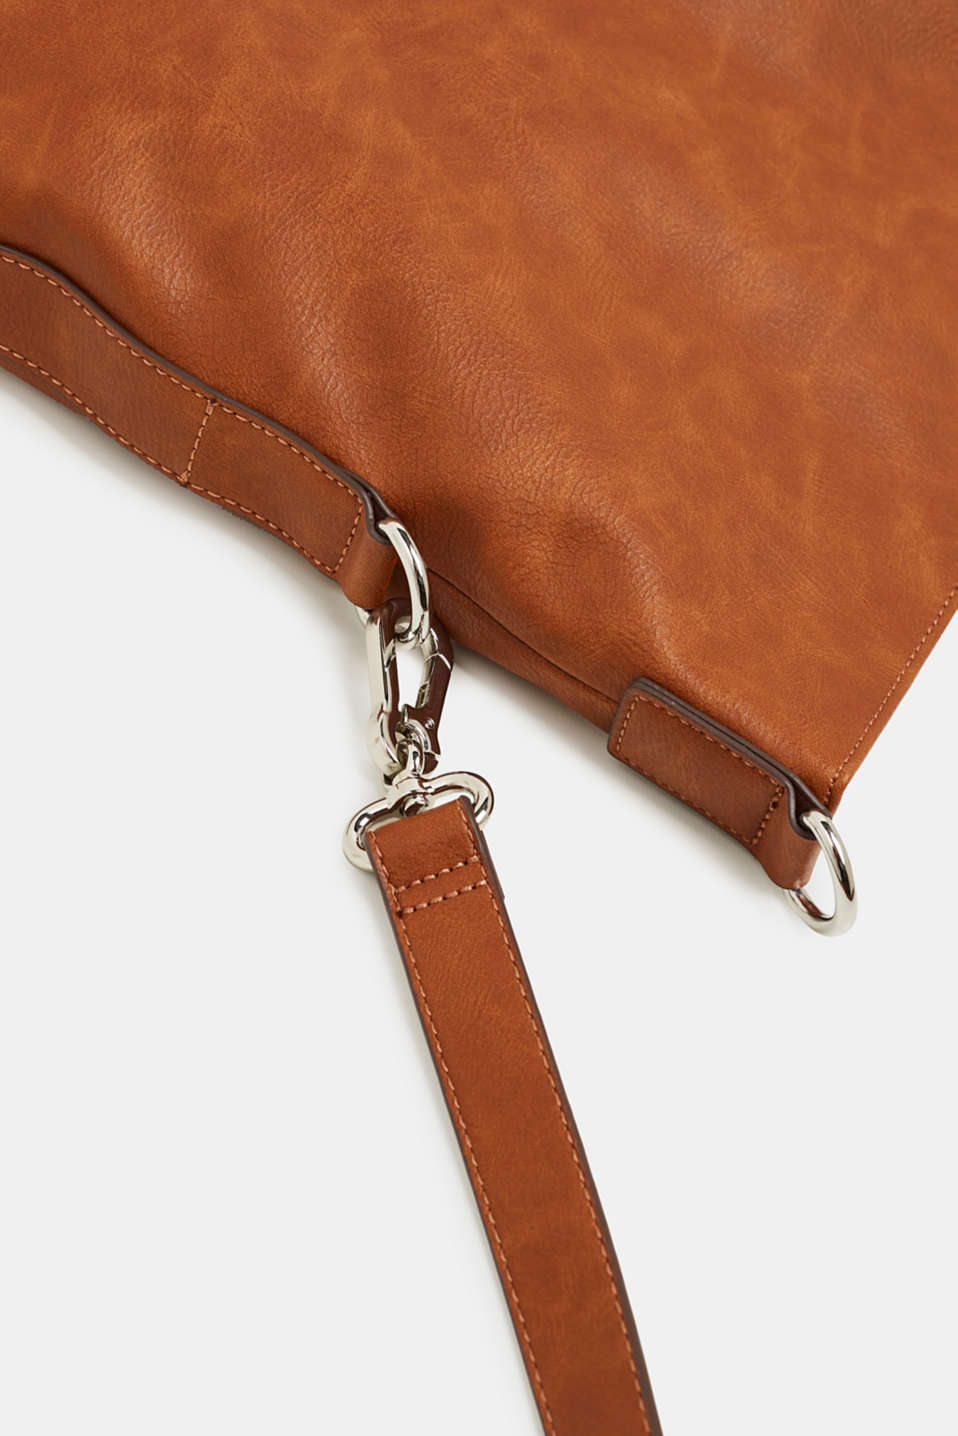 Faux leather shoulder bag, RUST BROWN, detail image number 5